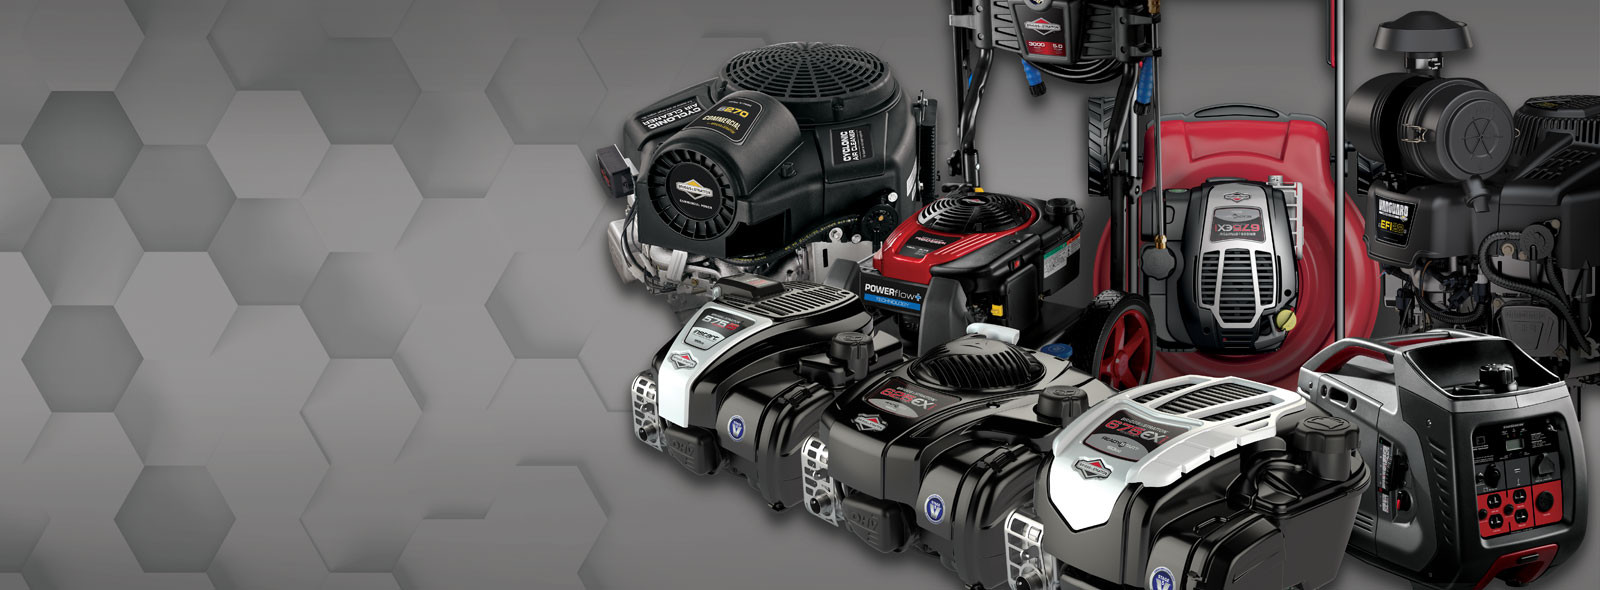 Pieces-moteur-briggs-and-stratton